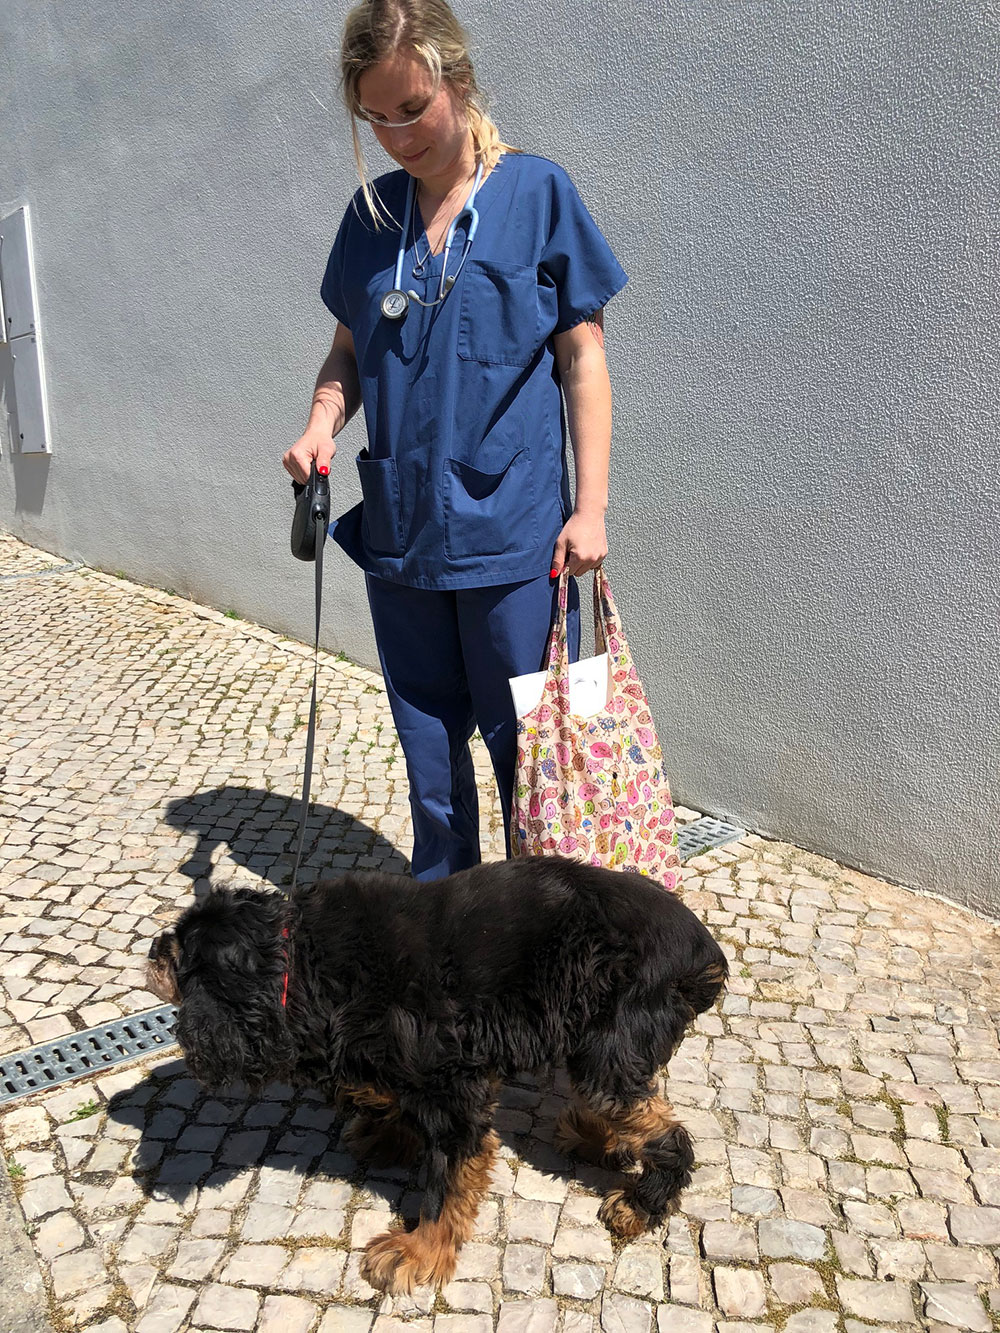 Bobby had to wait until his passport was ready, during which time he had the good fortune to be cared for by lovely vet Ann